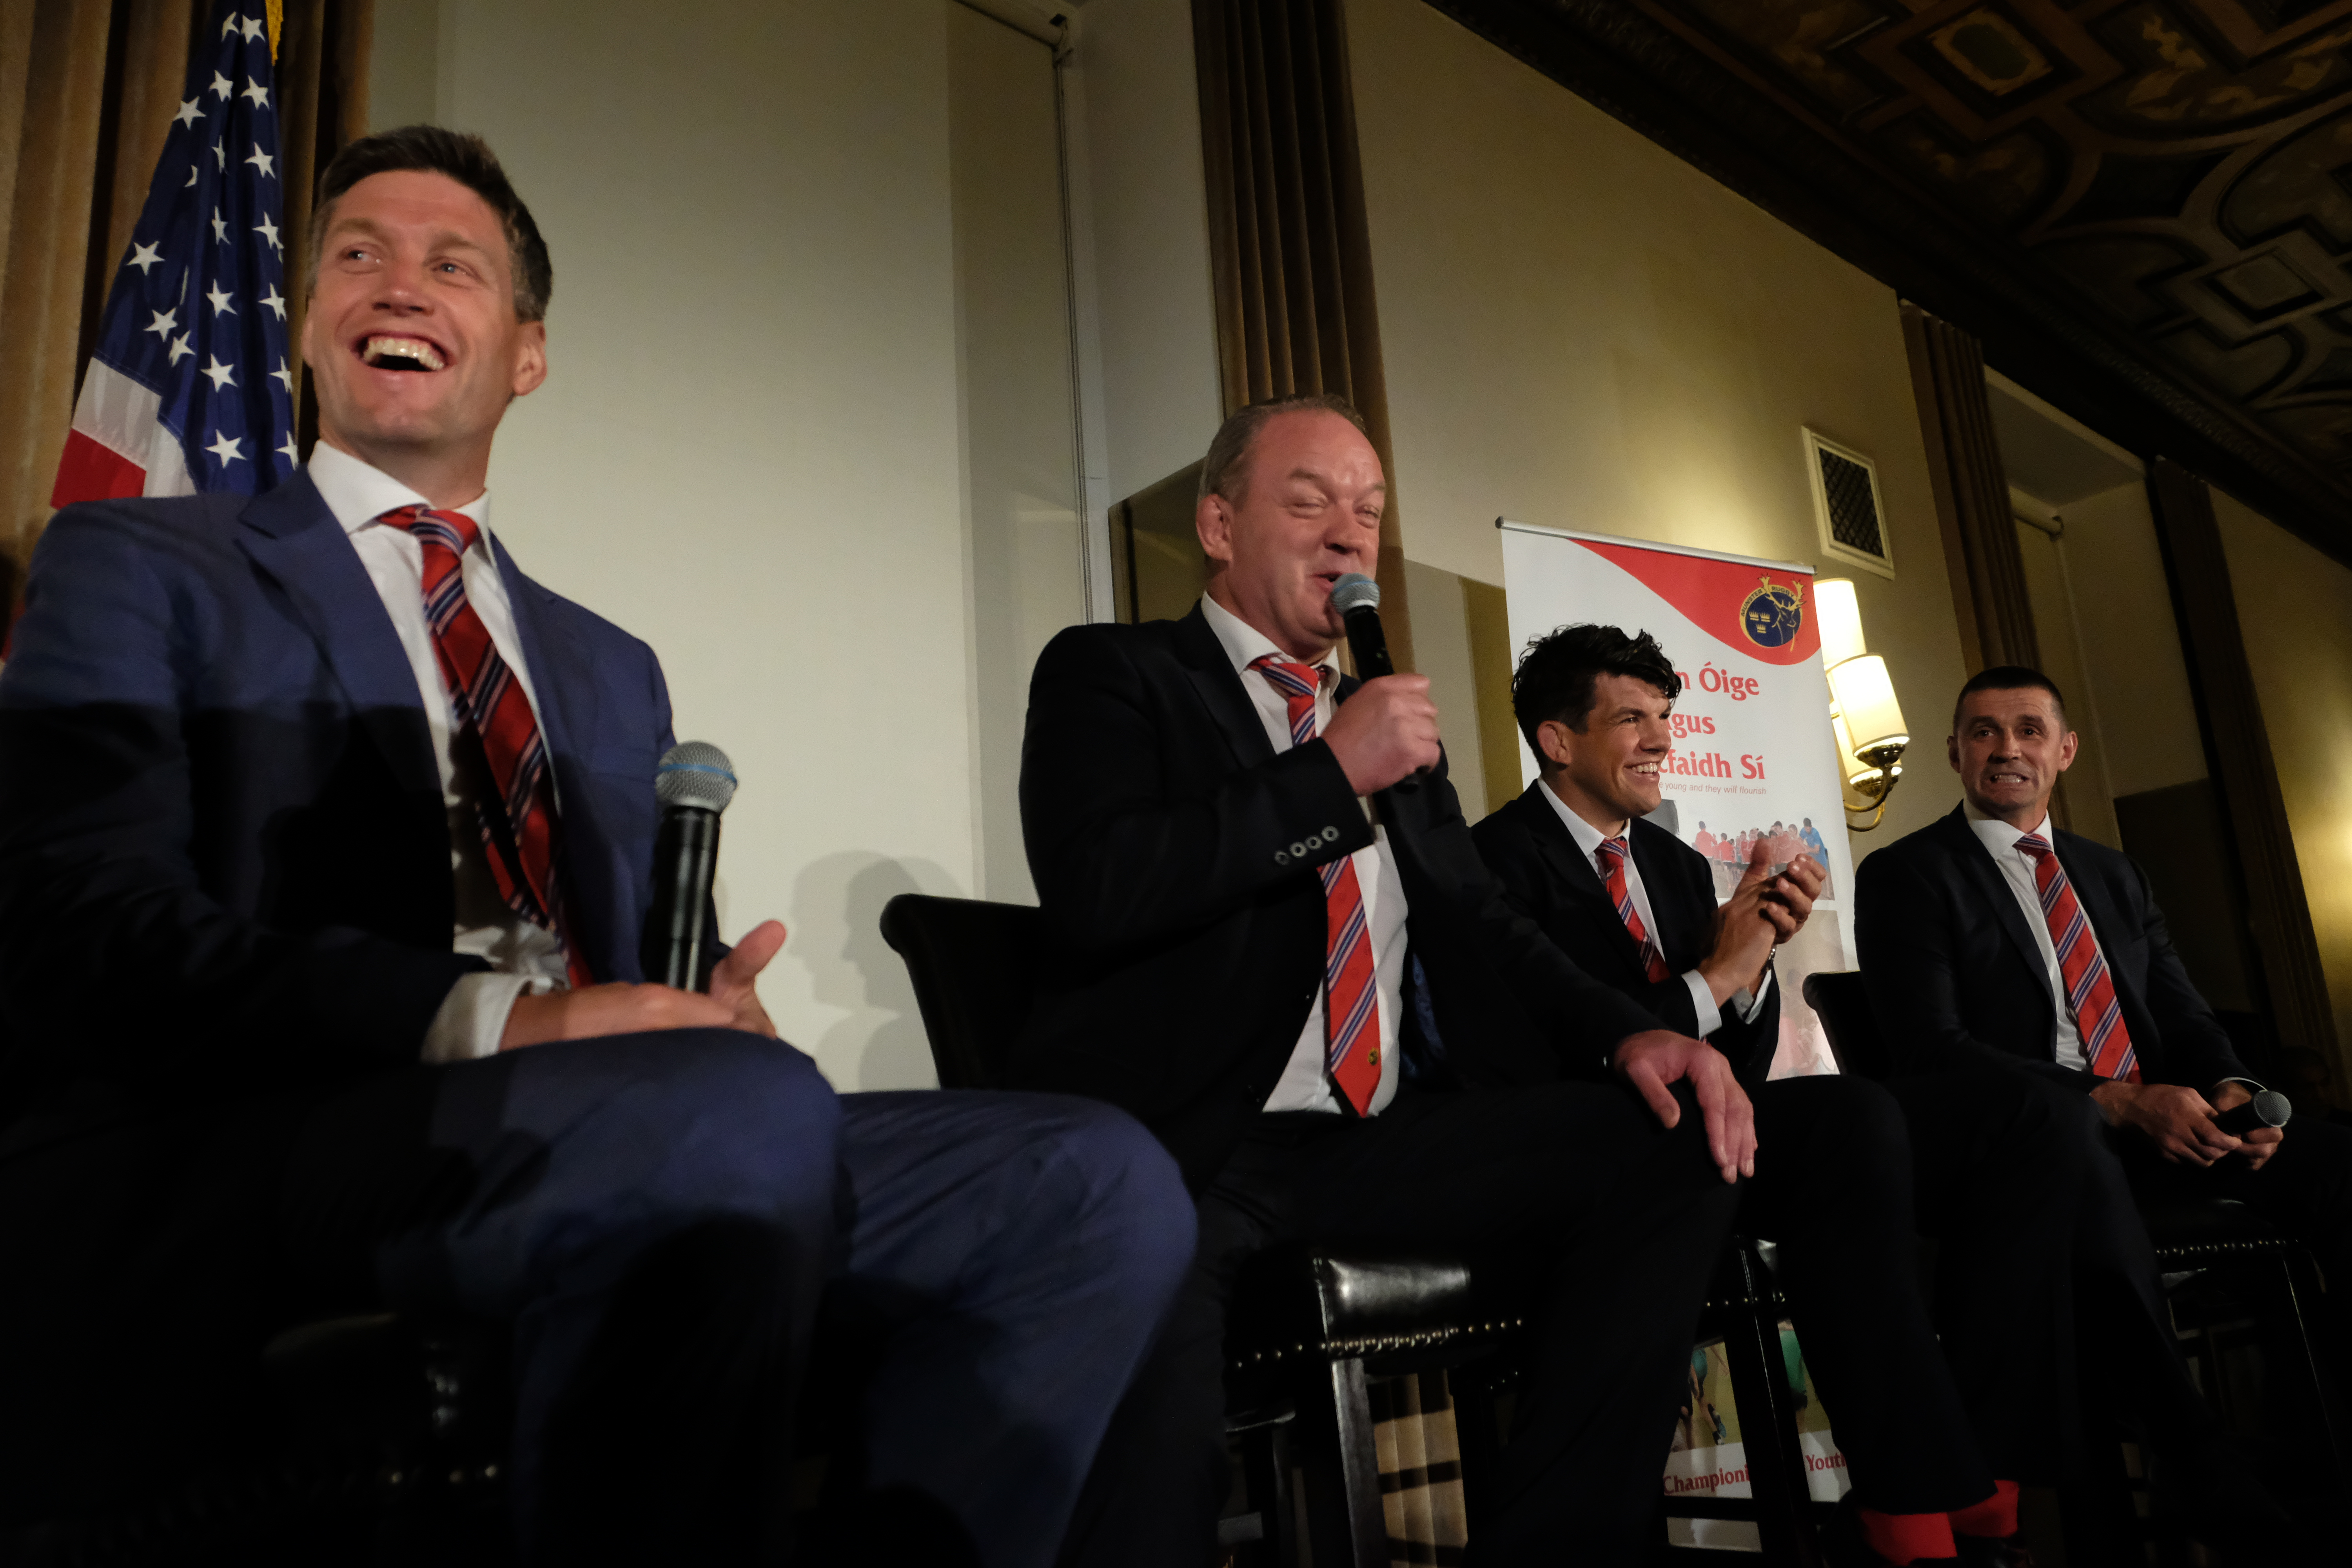 At the Munster Rugby banquet at The Athletic Club in Manhattan, New York, were Ronan O'Gara, Mick Galwey, Donncha O'Callaghan, and Alan Quinlan.